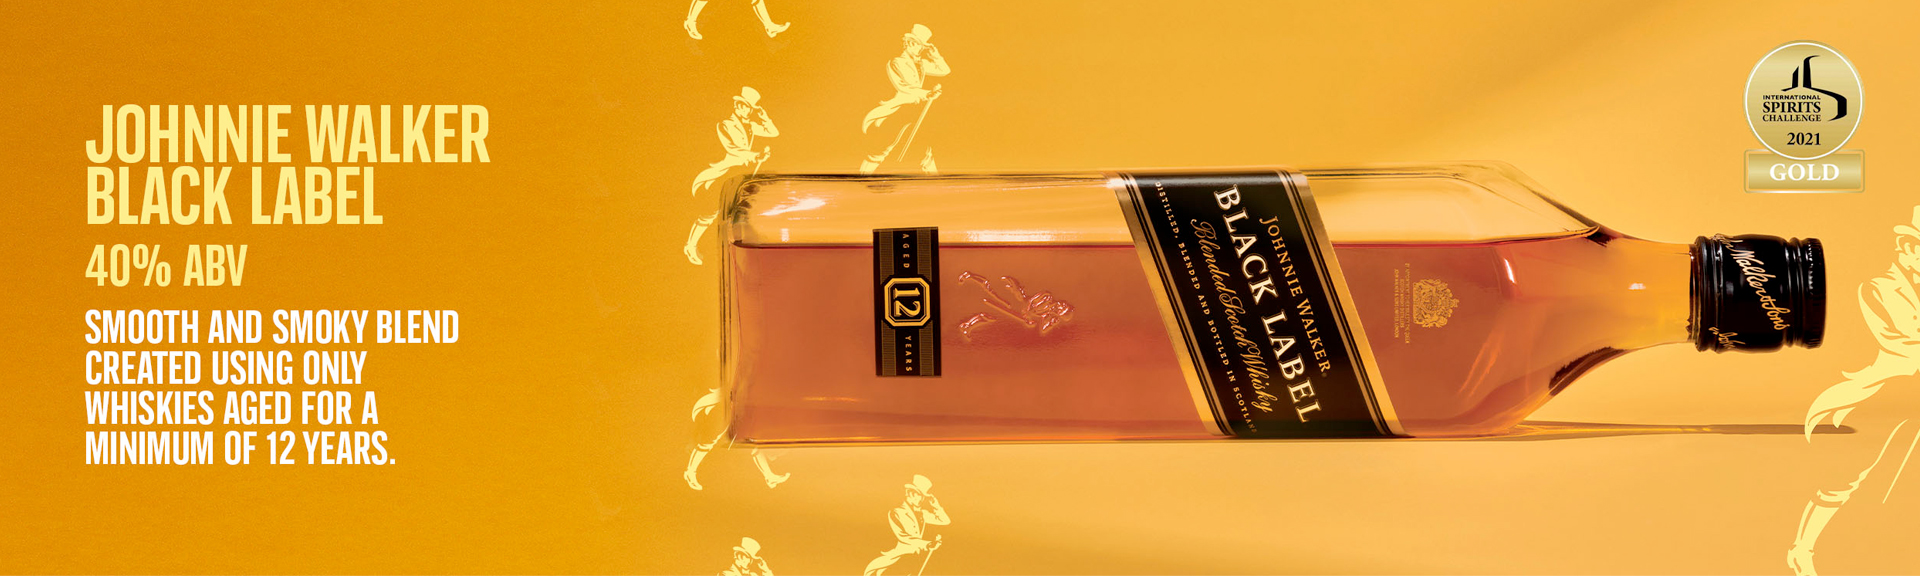 Johnnie Walker Black Label Aged 12 Years Blended Scotch Whisky 1L